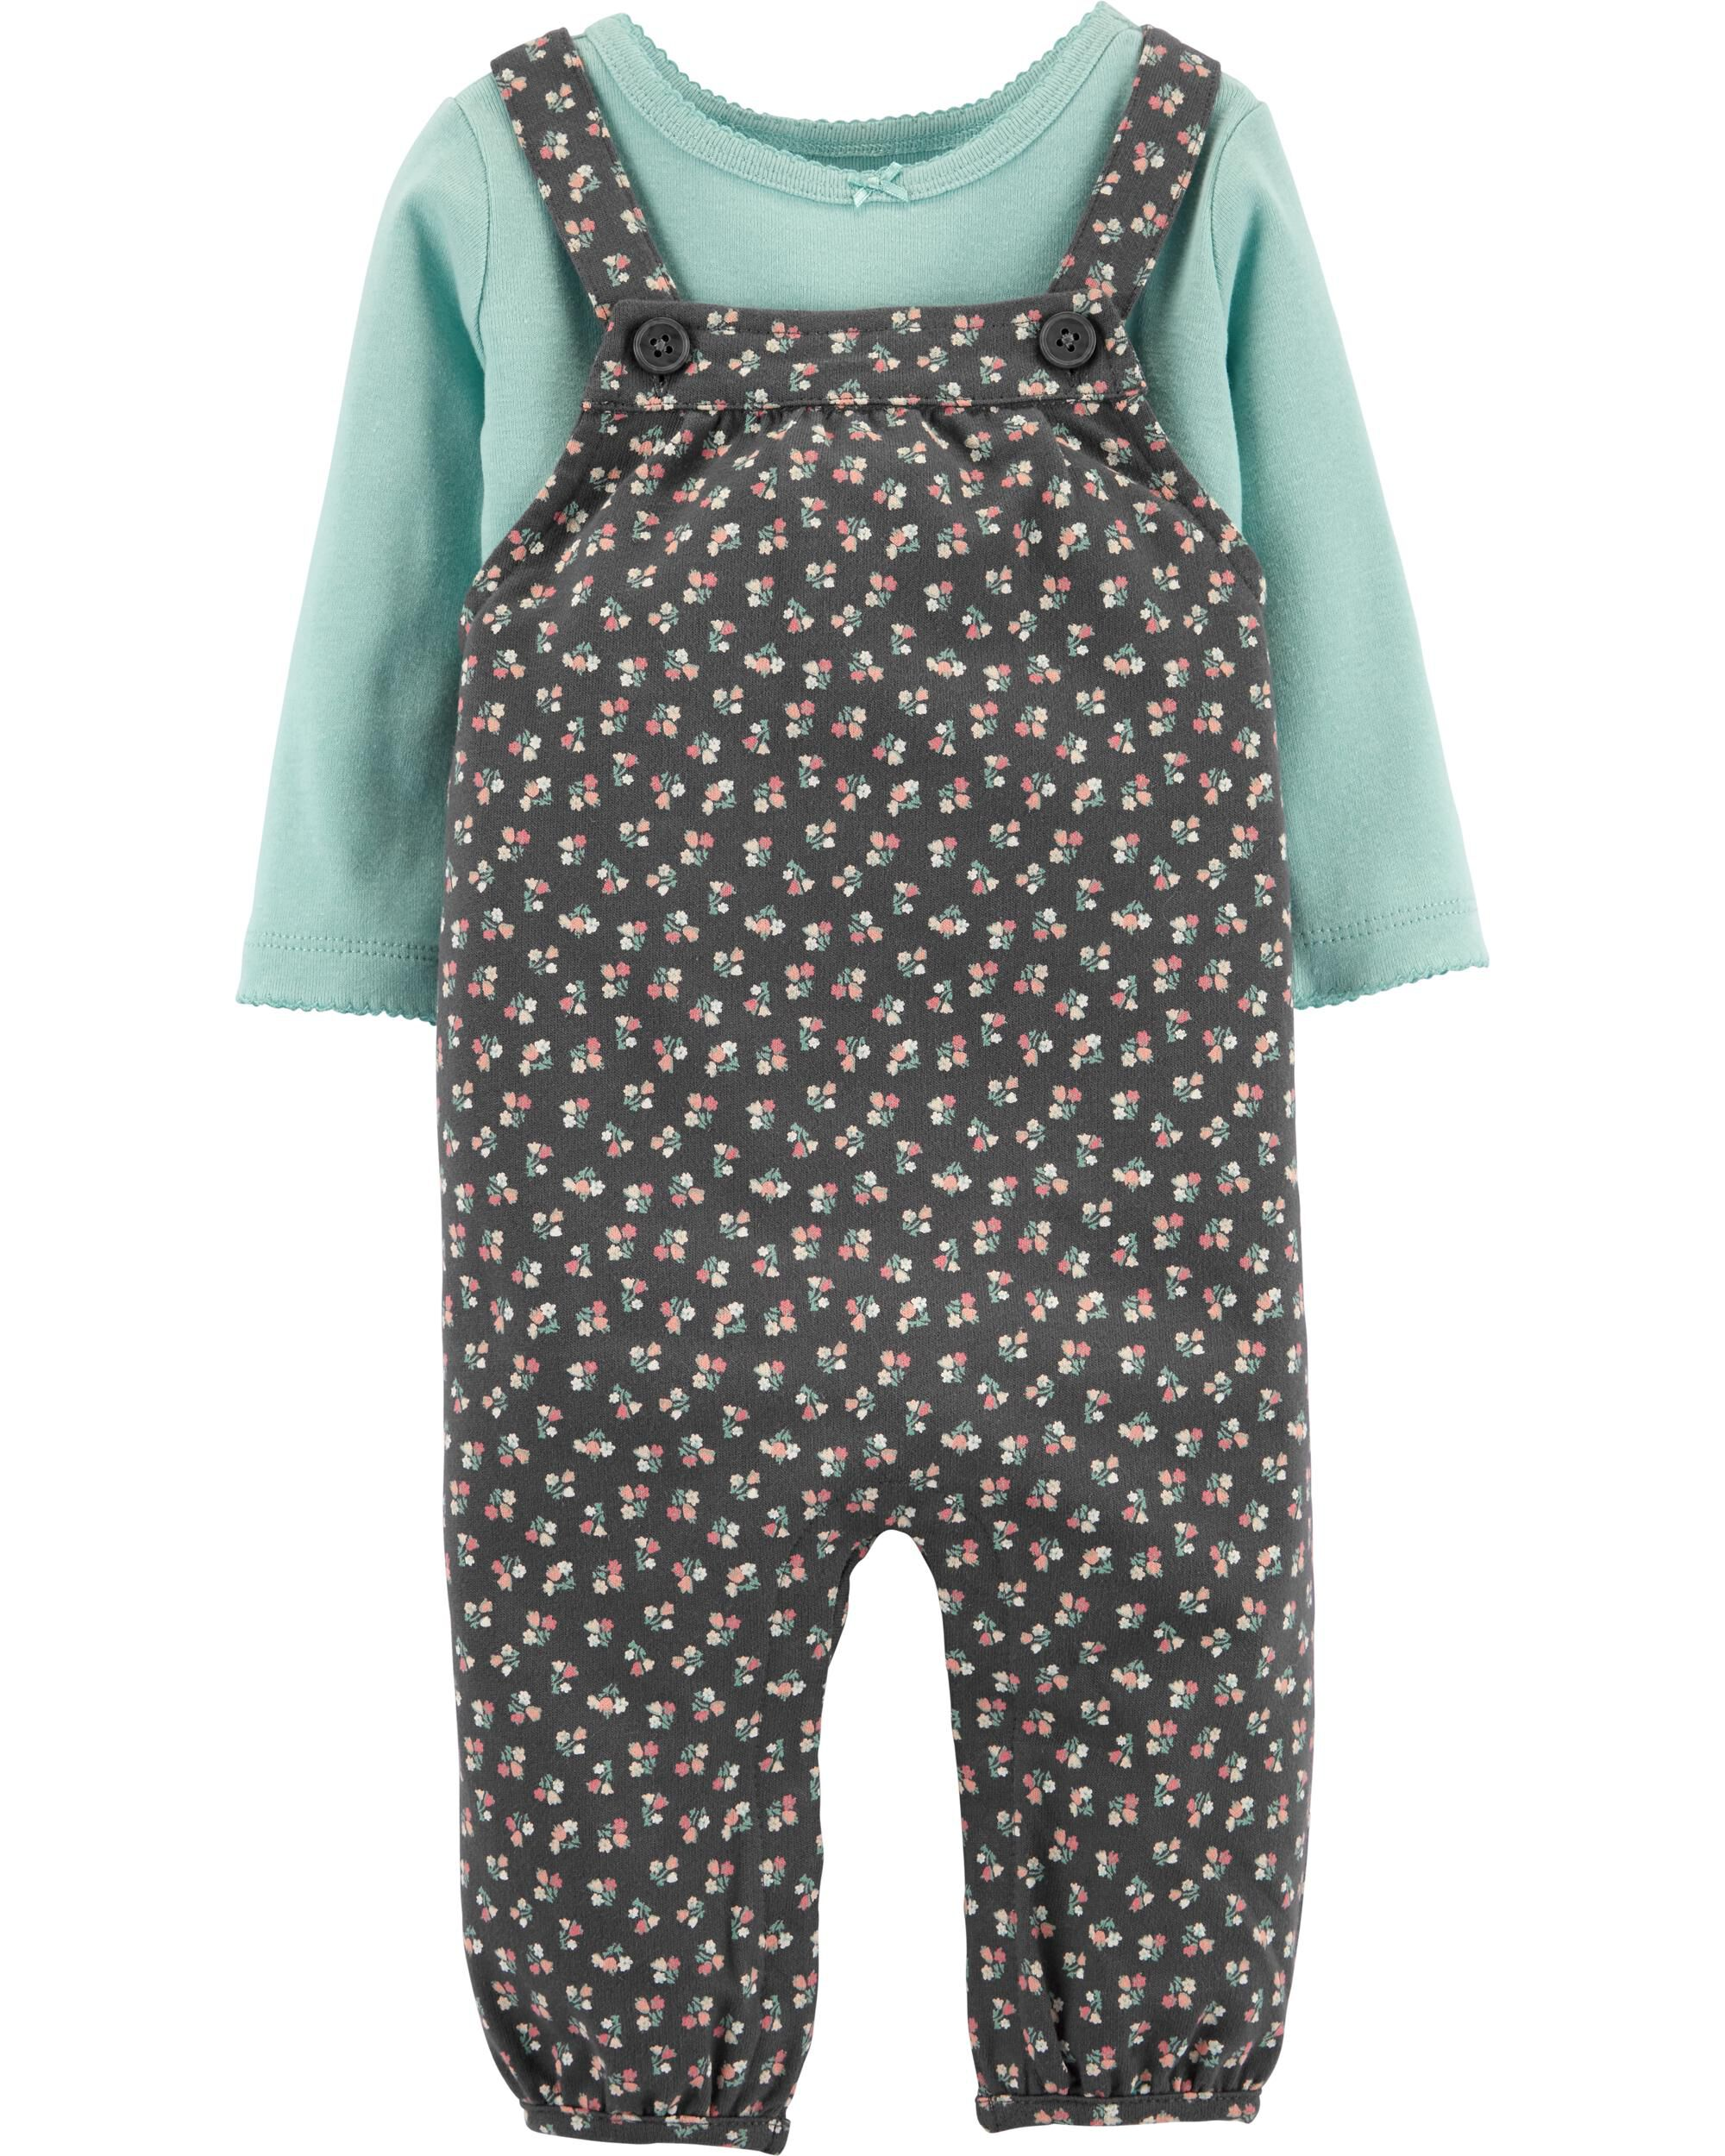 *CLEARANCE* 2-Piece Tee & Floral Knit Overalls Set